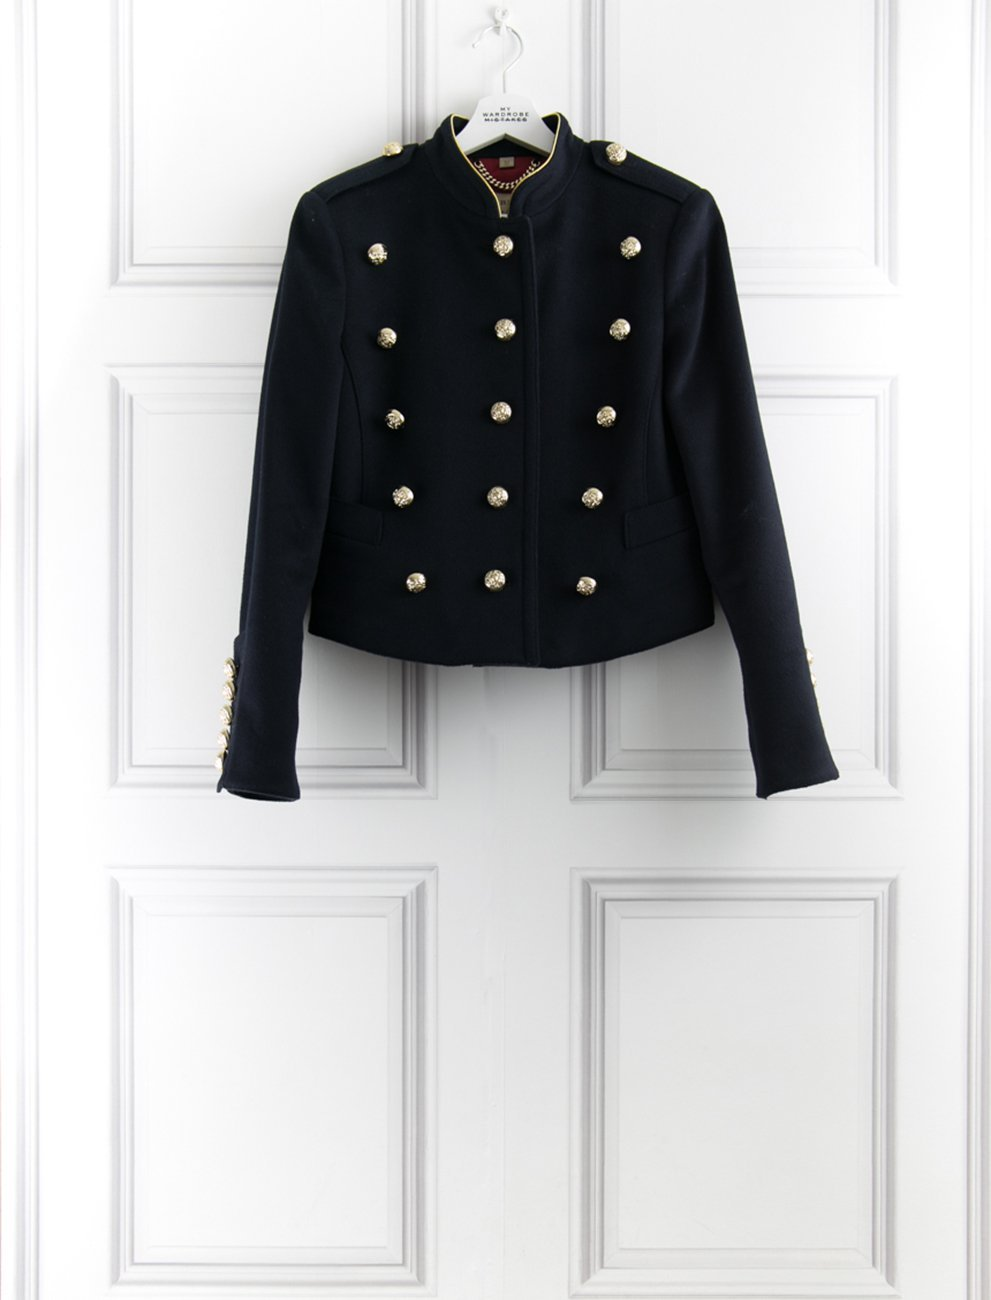 BURBERRY CLOTHING Military jacket- My Wardrobe Mistakes